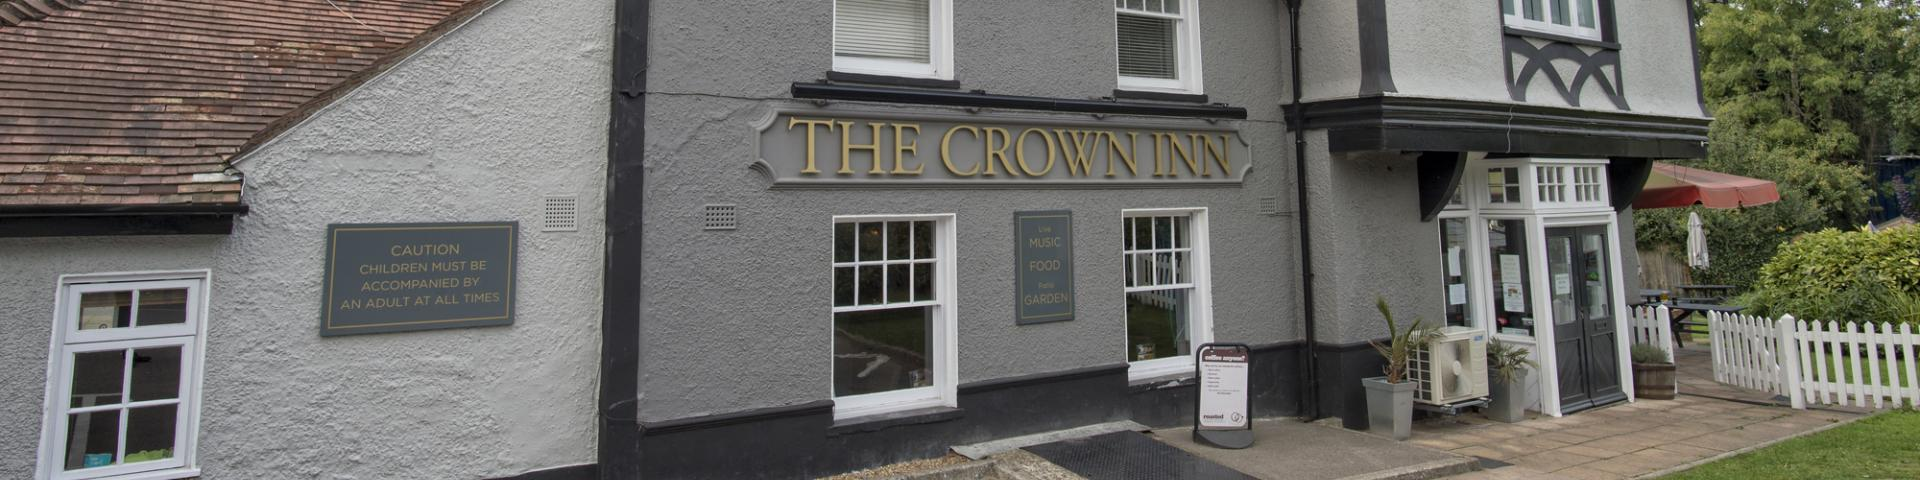 The Crown Inn Keston